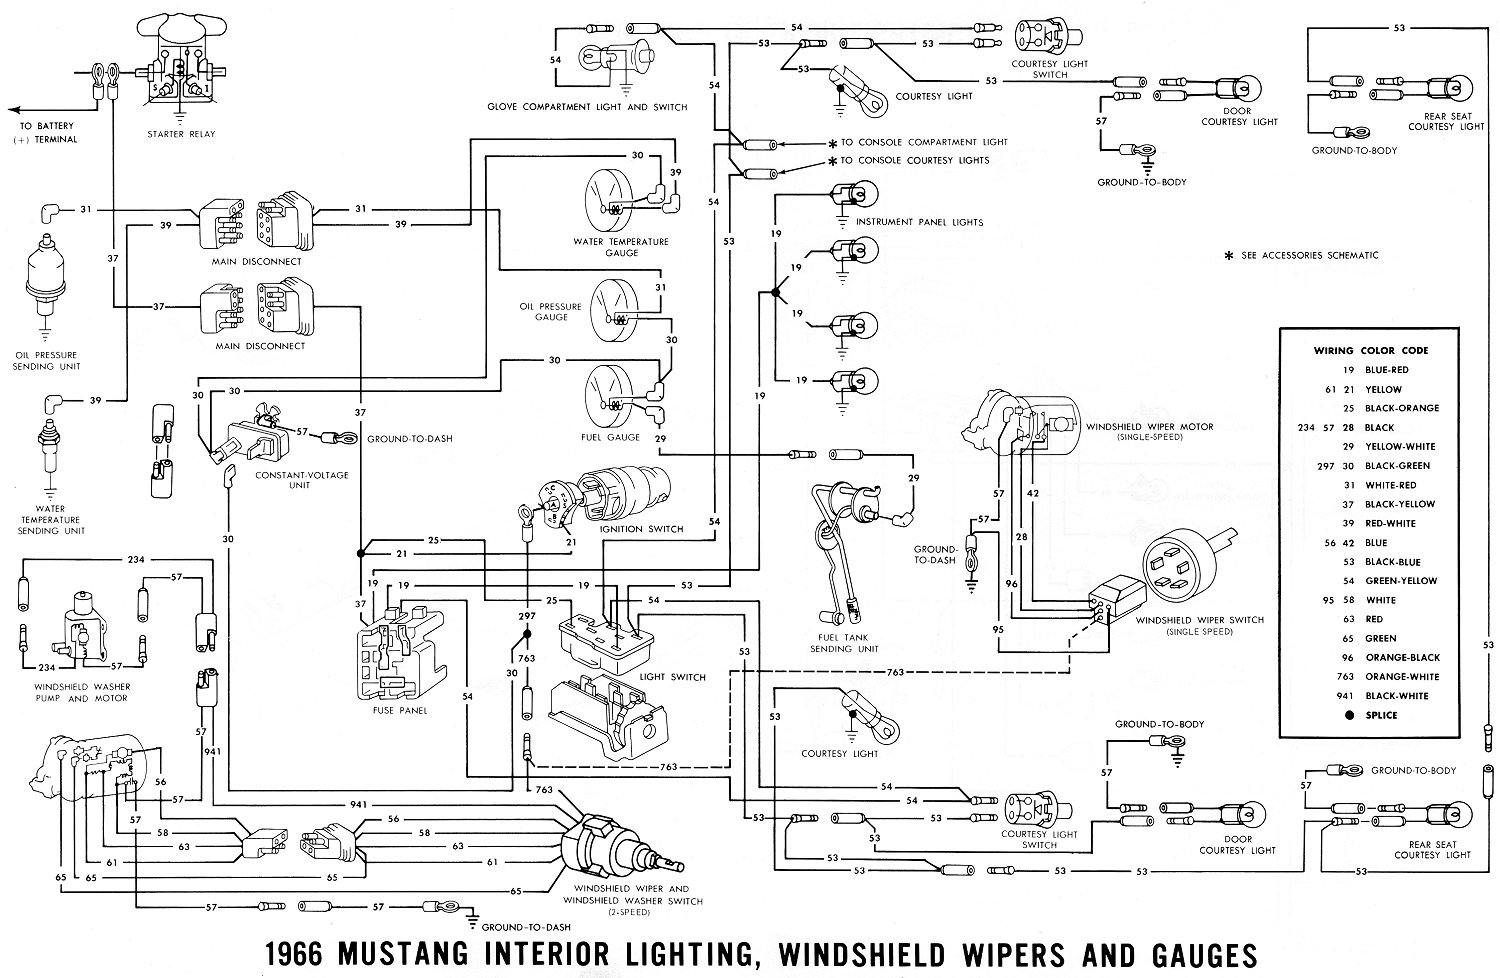 1966 mustang wiring diagram pdf with 1966 Ford Mustang Wiring Diagram on 41936  meter Voltmeter 2 moreover Trx250r Wiring Diagram furthermore Skytrak 6036 Electro Joystick Wiring Diagram as well 1966 Ford Mustang Wiring Diagram besides 686047 64 1 2 Mustang Turn Signal Issue.